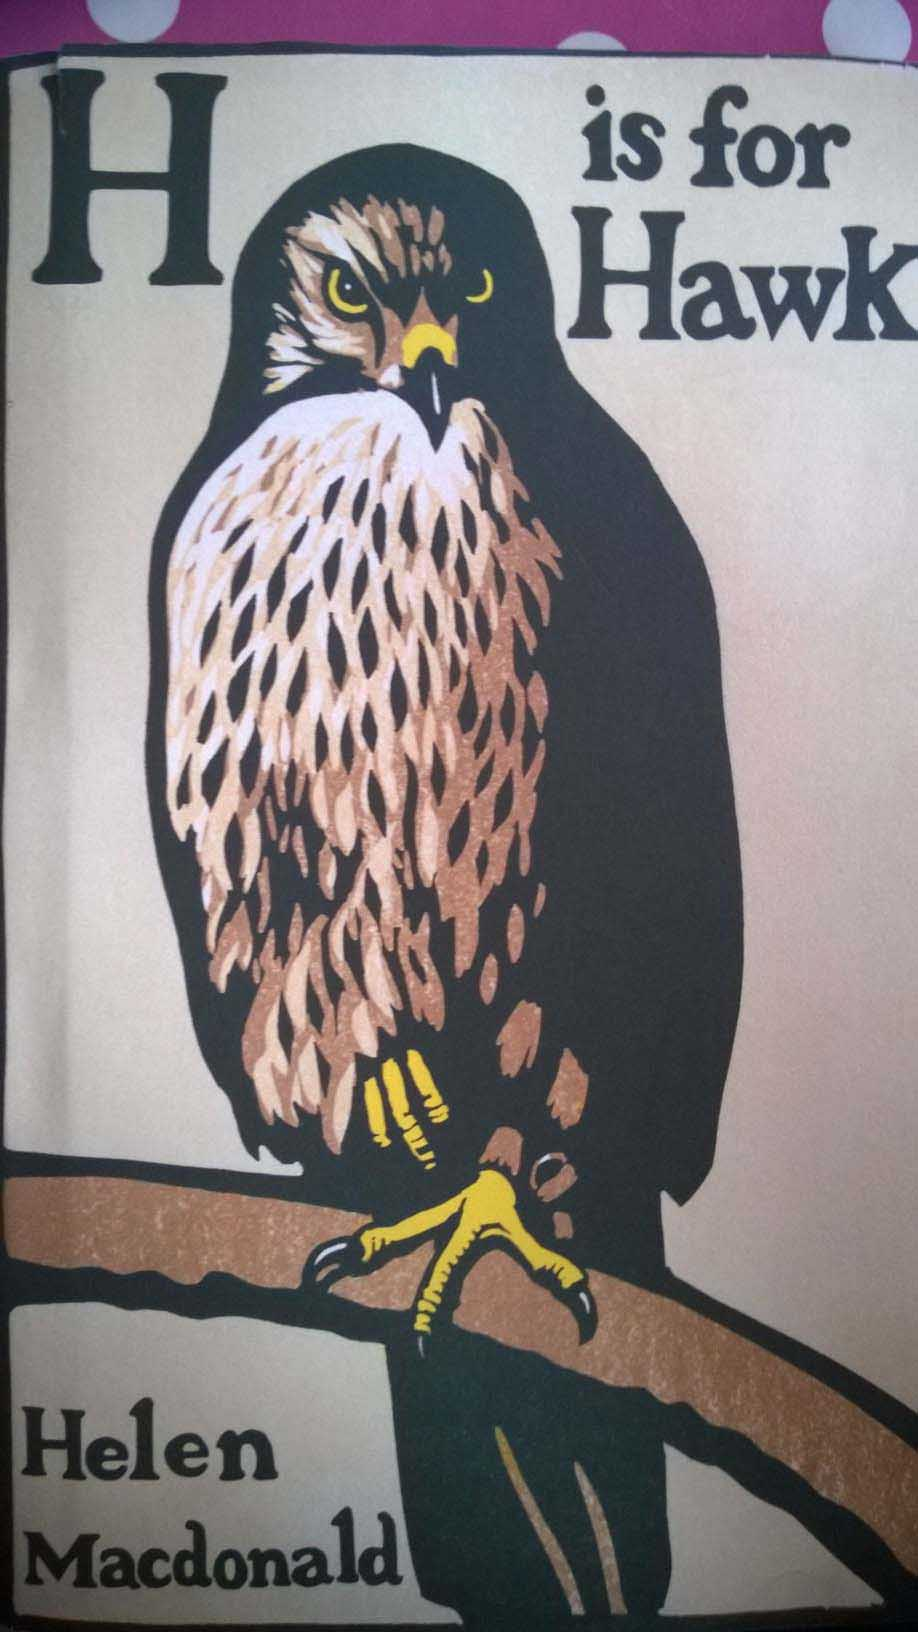 BOOK REVIEW: H IS FOR HAWK